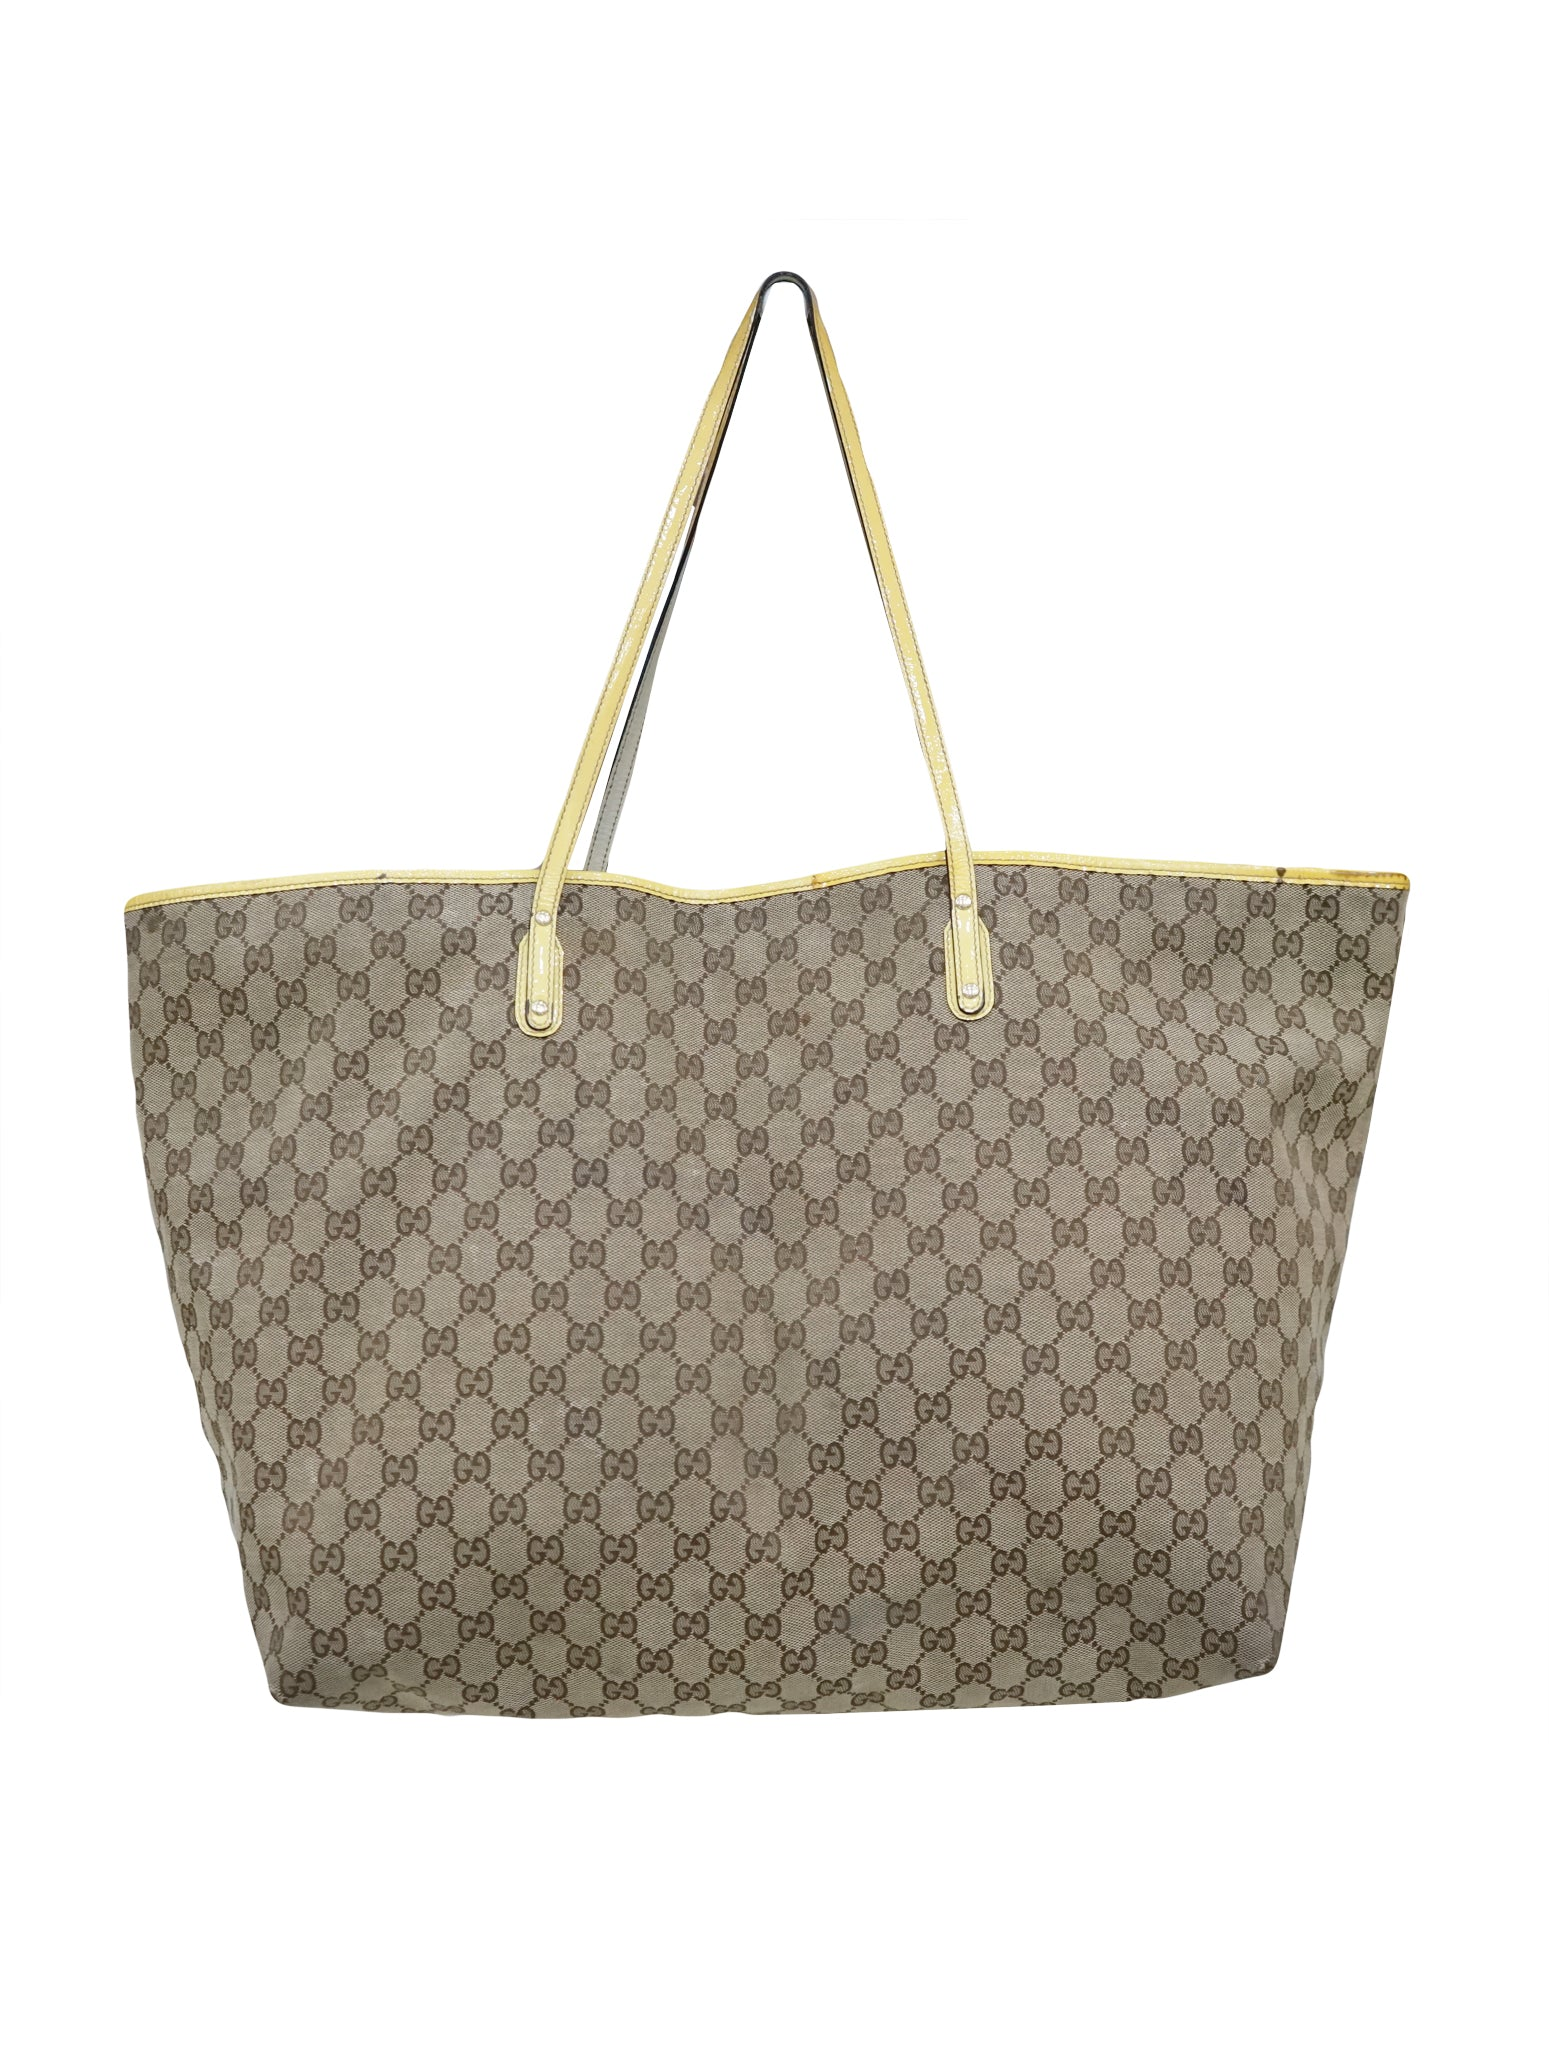 GUCCIOLI CHIHUAHUA CANVAS TOTE BAG